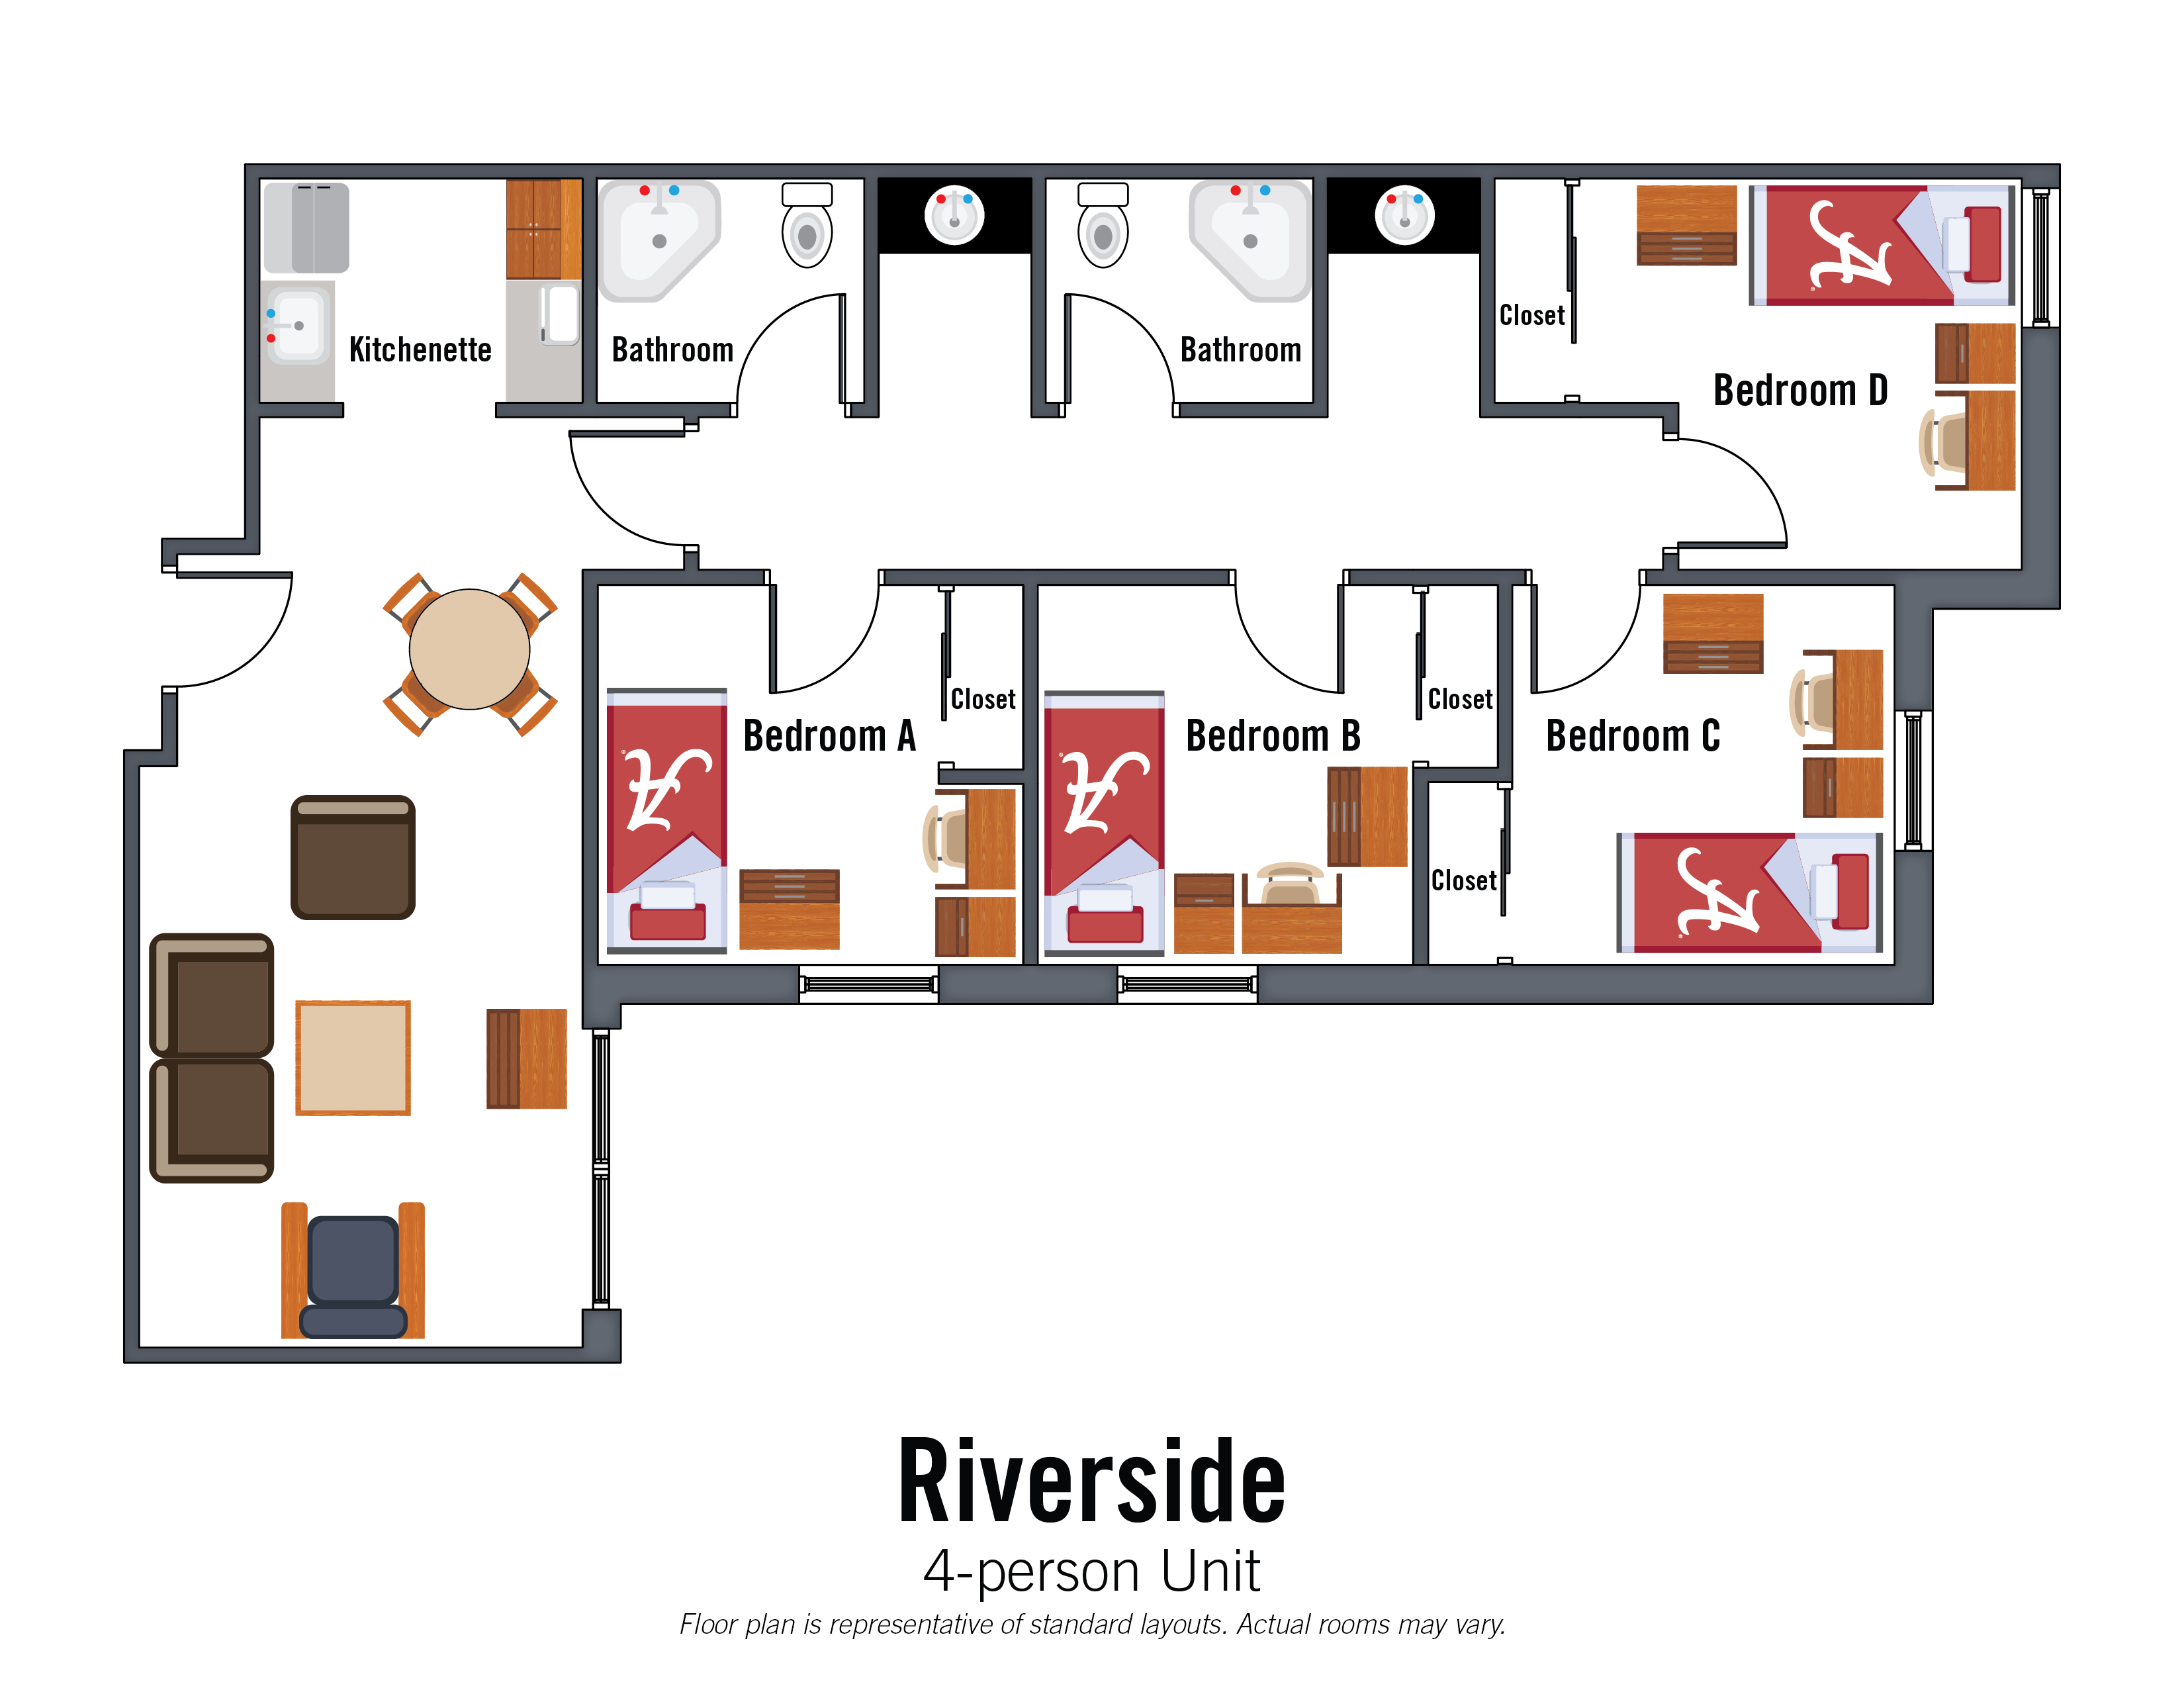 Riverside Housing And Residential Communities